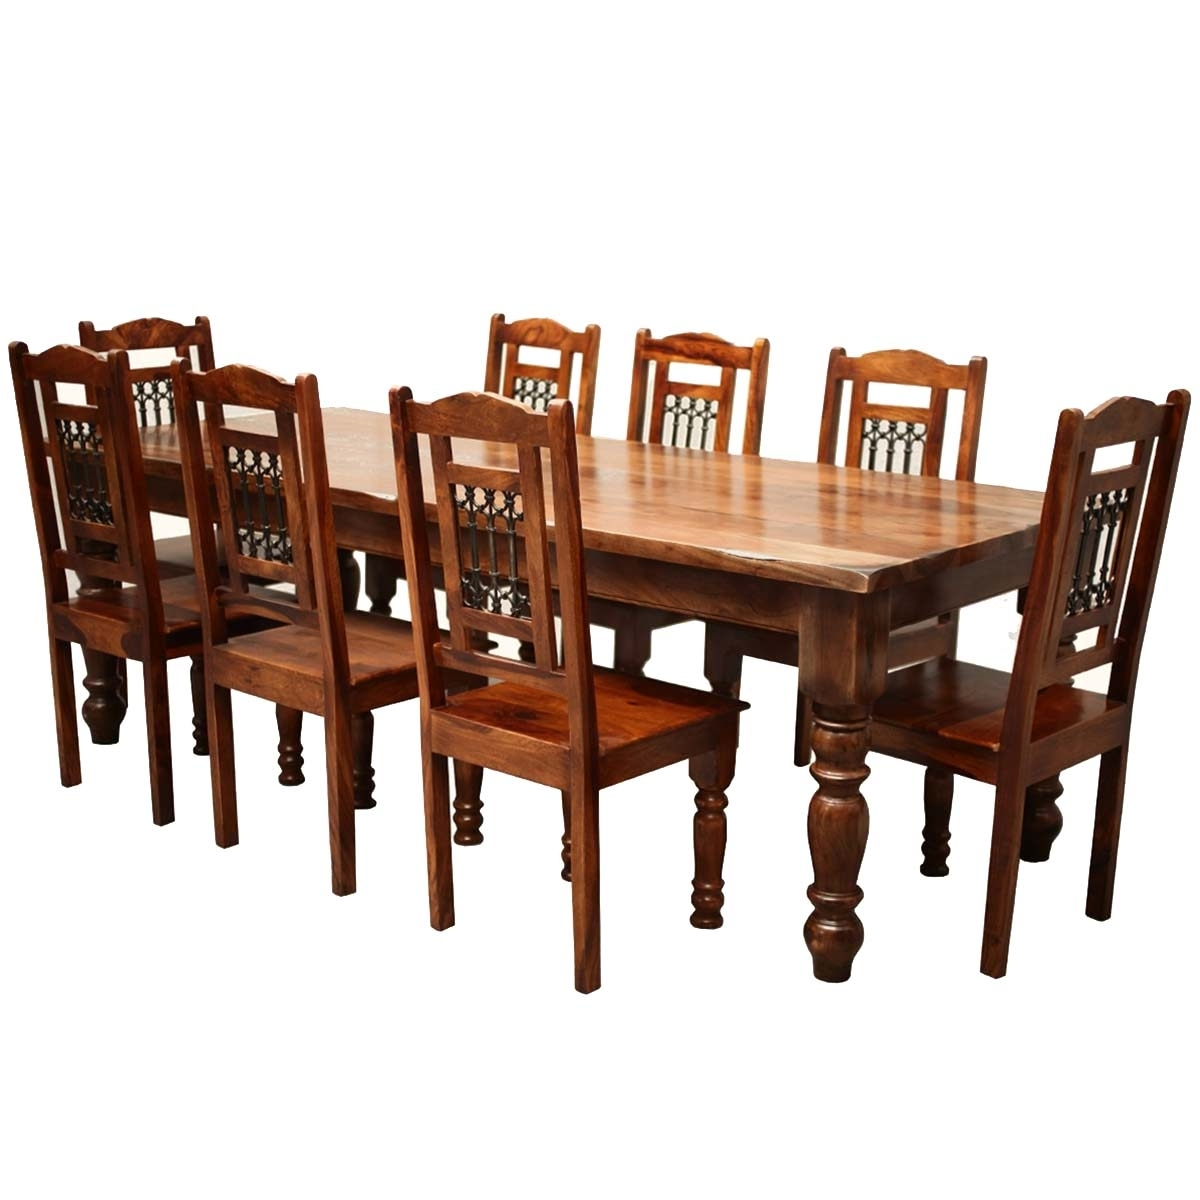 Most Recently Released 8 Chairs Dining Tables Regarding Rustic Furniture Solid Wood Large Dining Table & 8 Chair Set (Gallery 6 of 25)